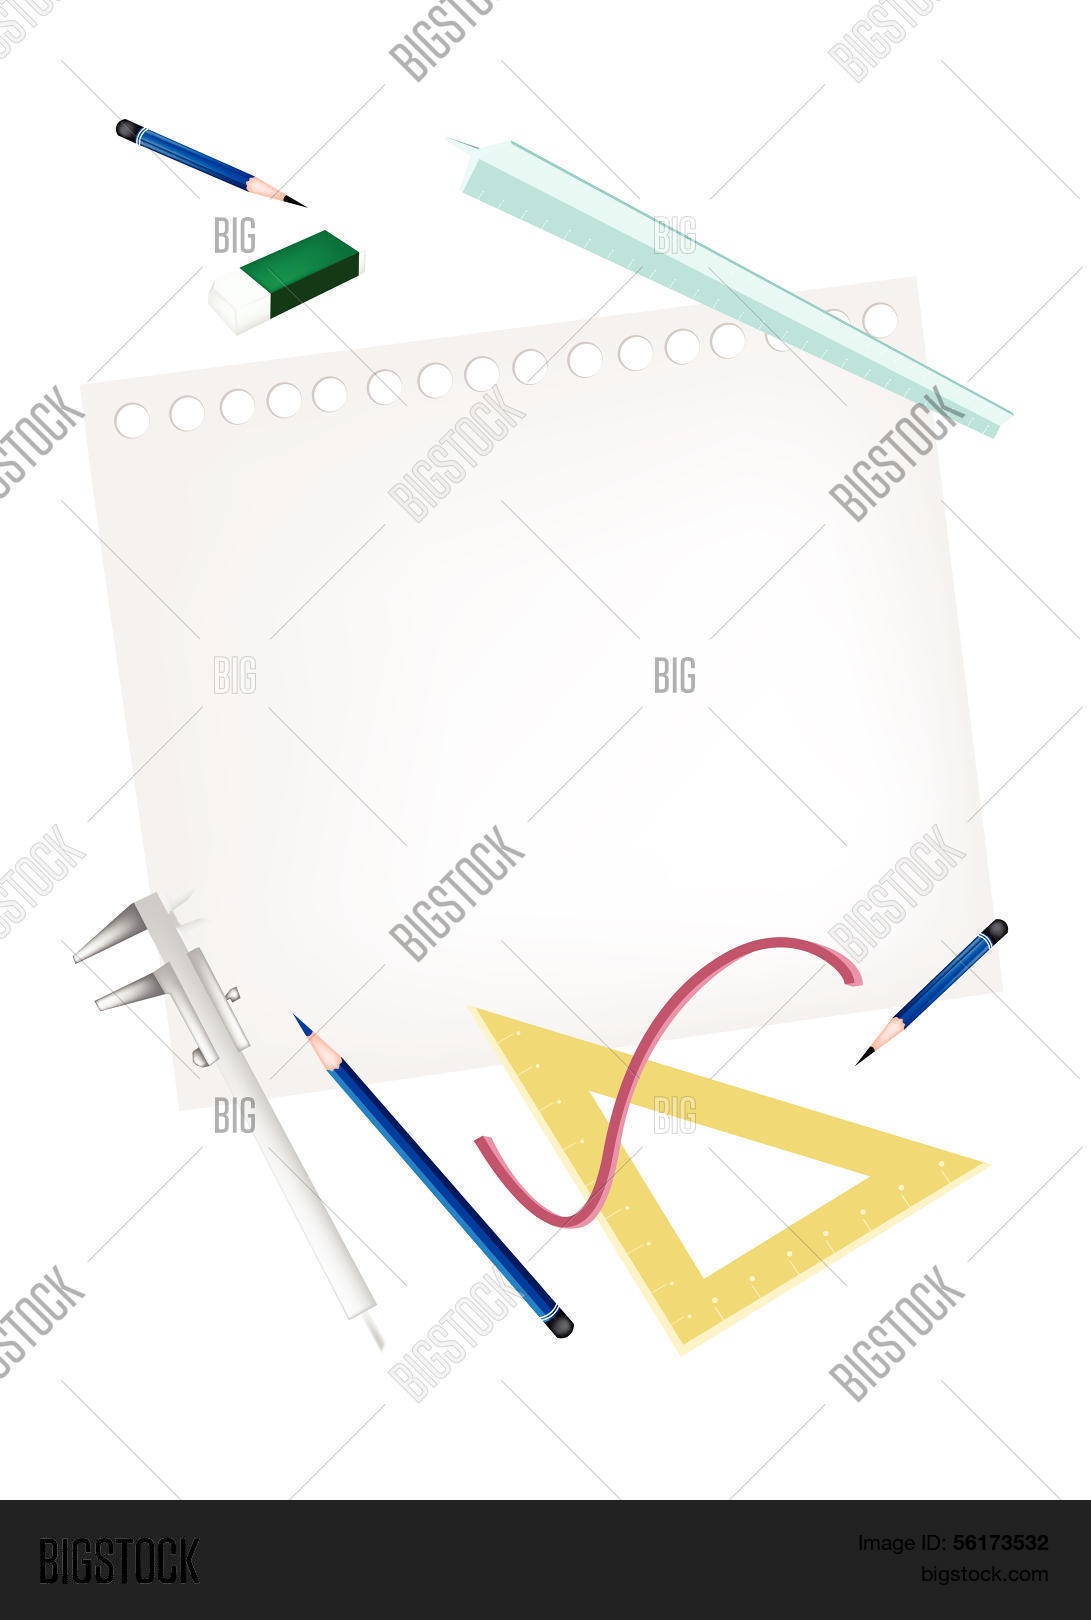 hight resolution of pencil and caliper with rulers and eraser on blank page